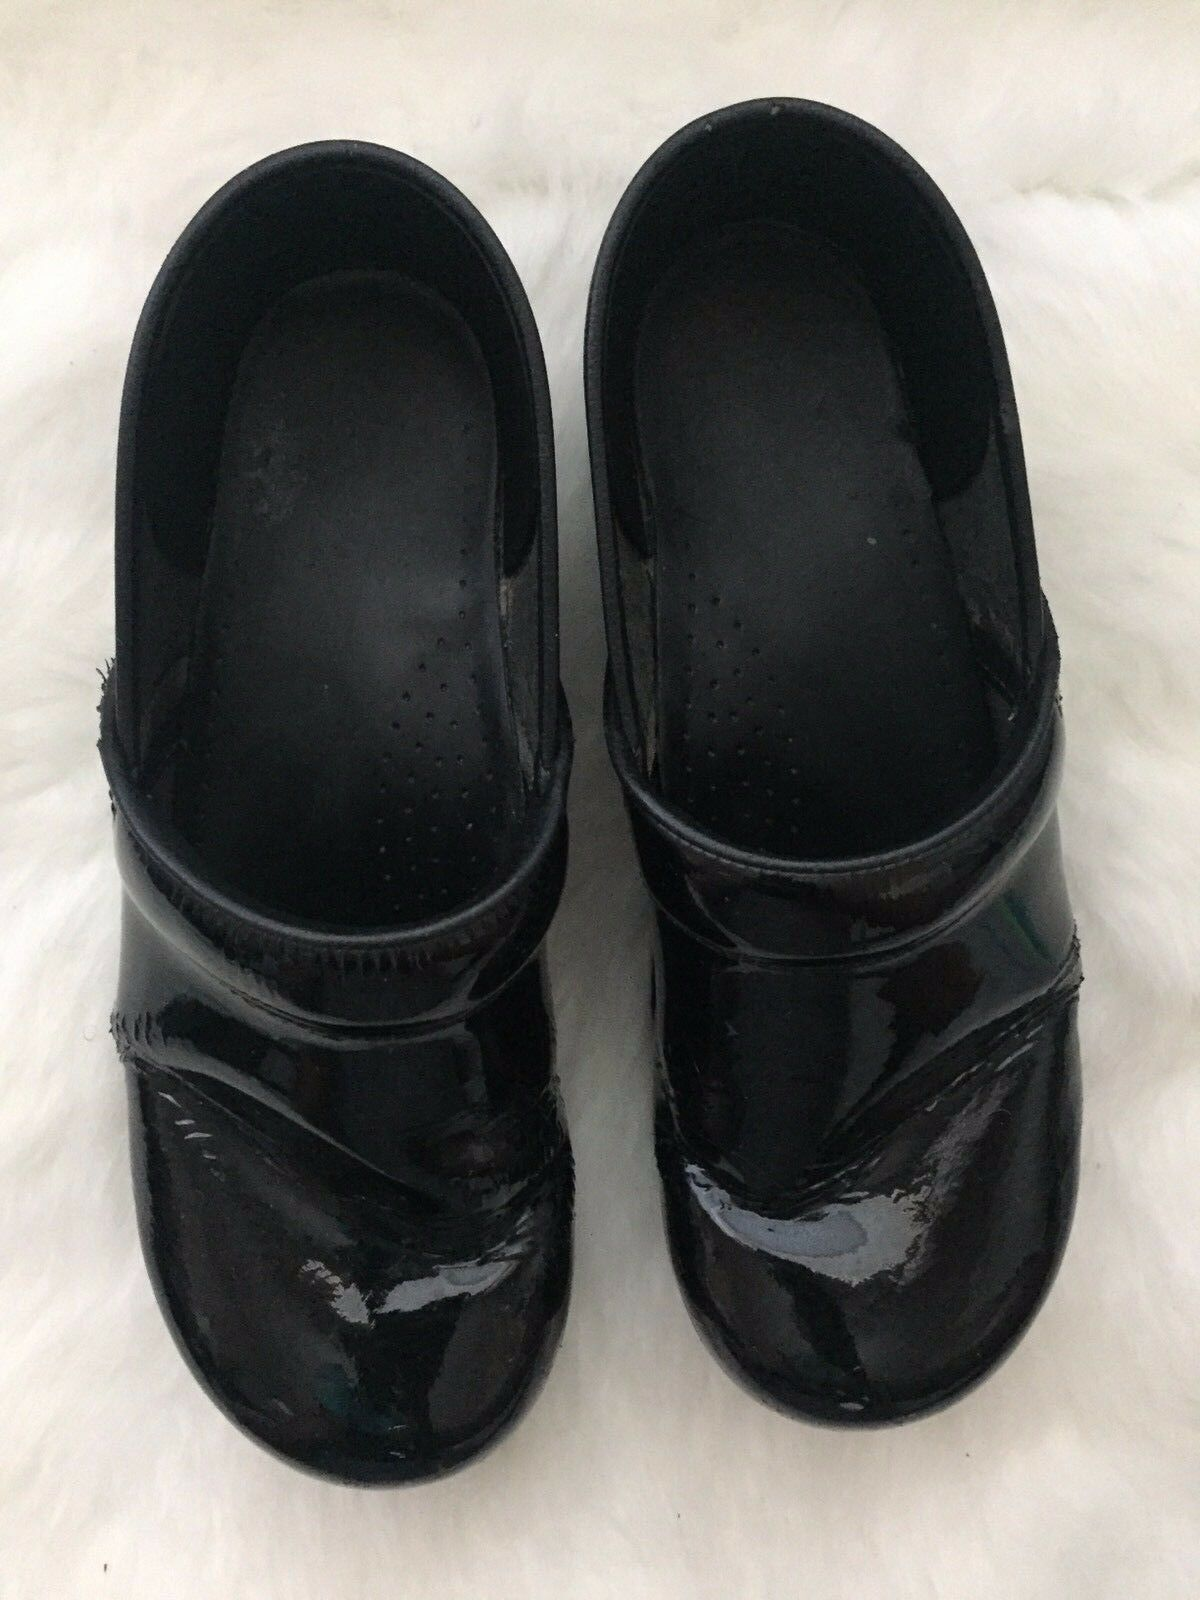 DANSKO Black Patent Leather Leather Leather Clog shoes Sz 42 11.5-12 da5699